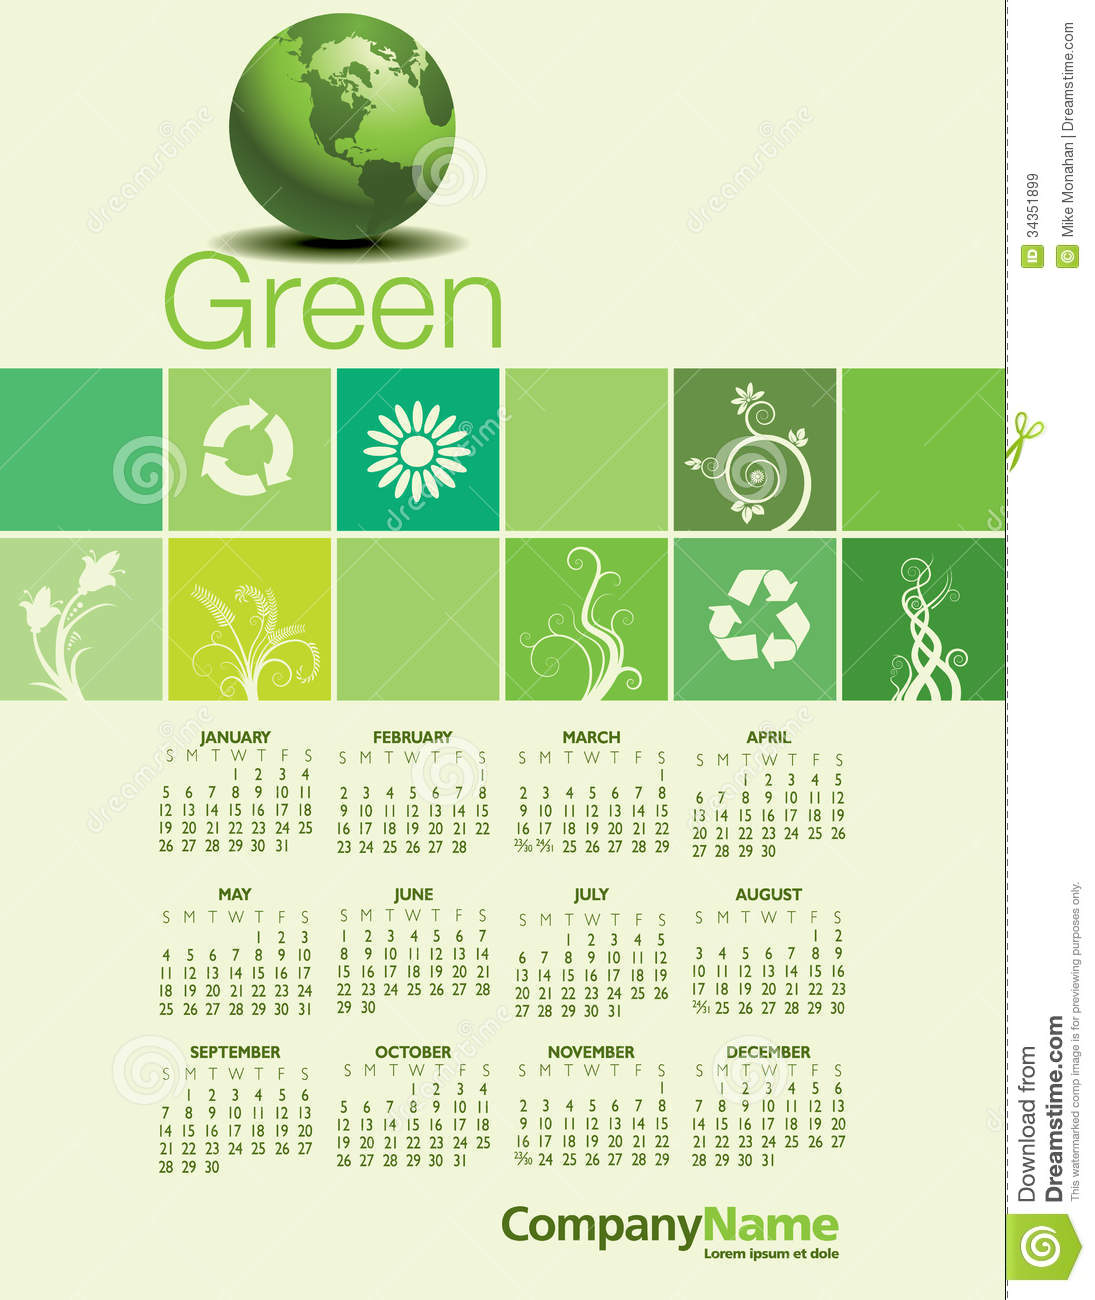 Creative green 2014 calendar royalty free stock images for Green design company